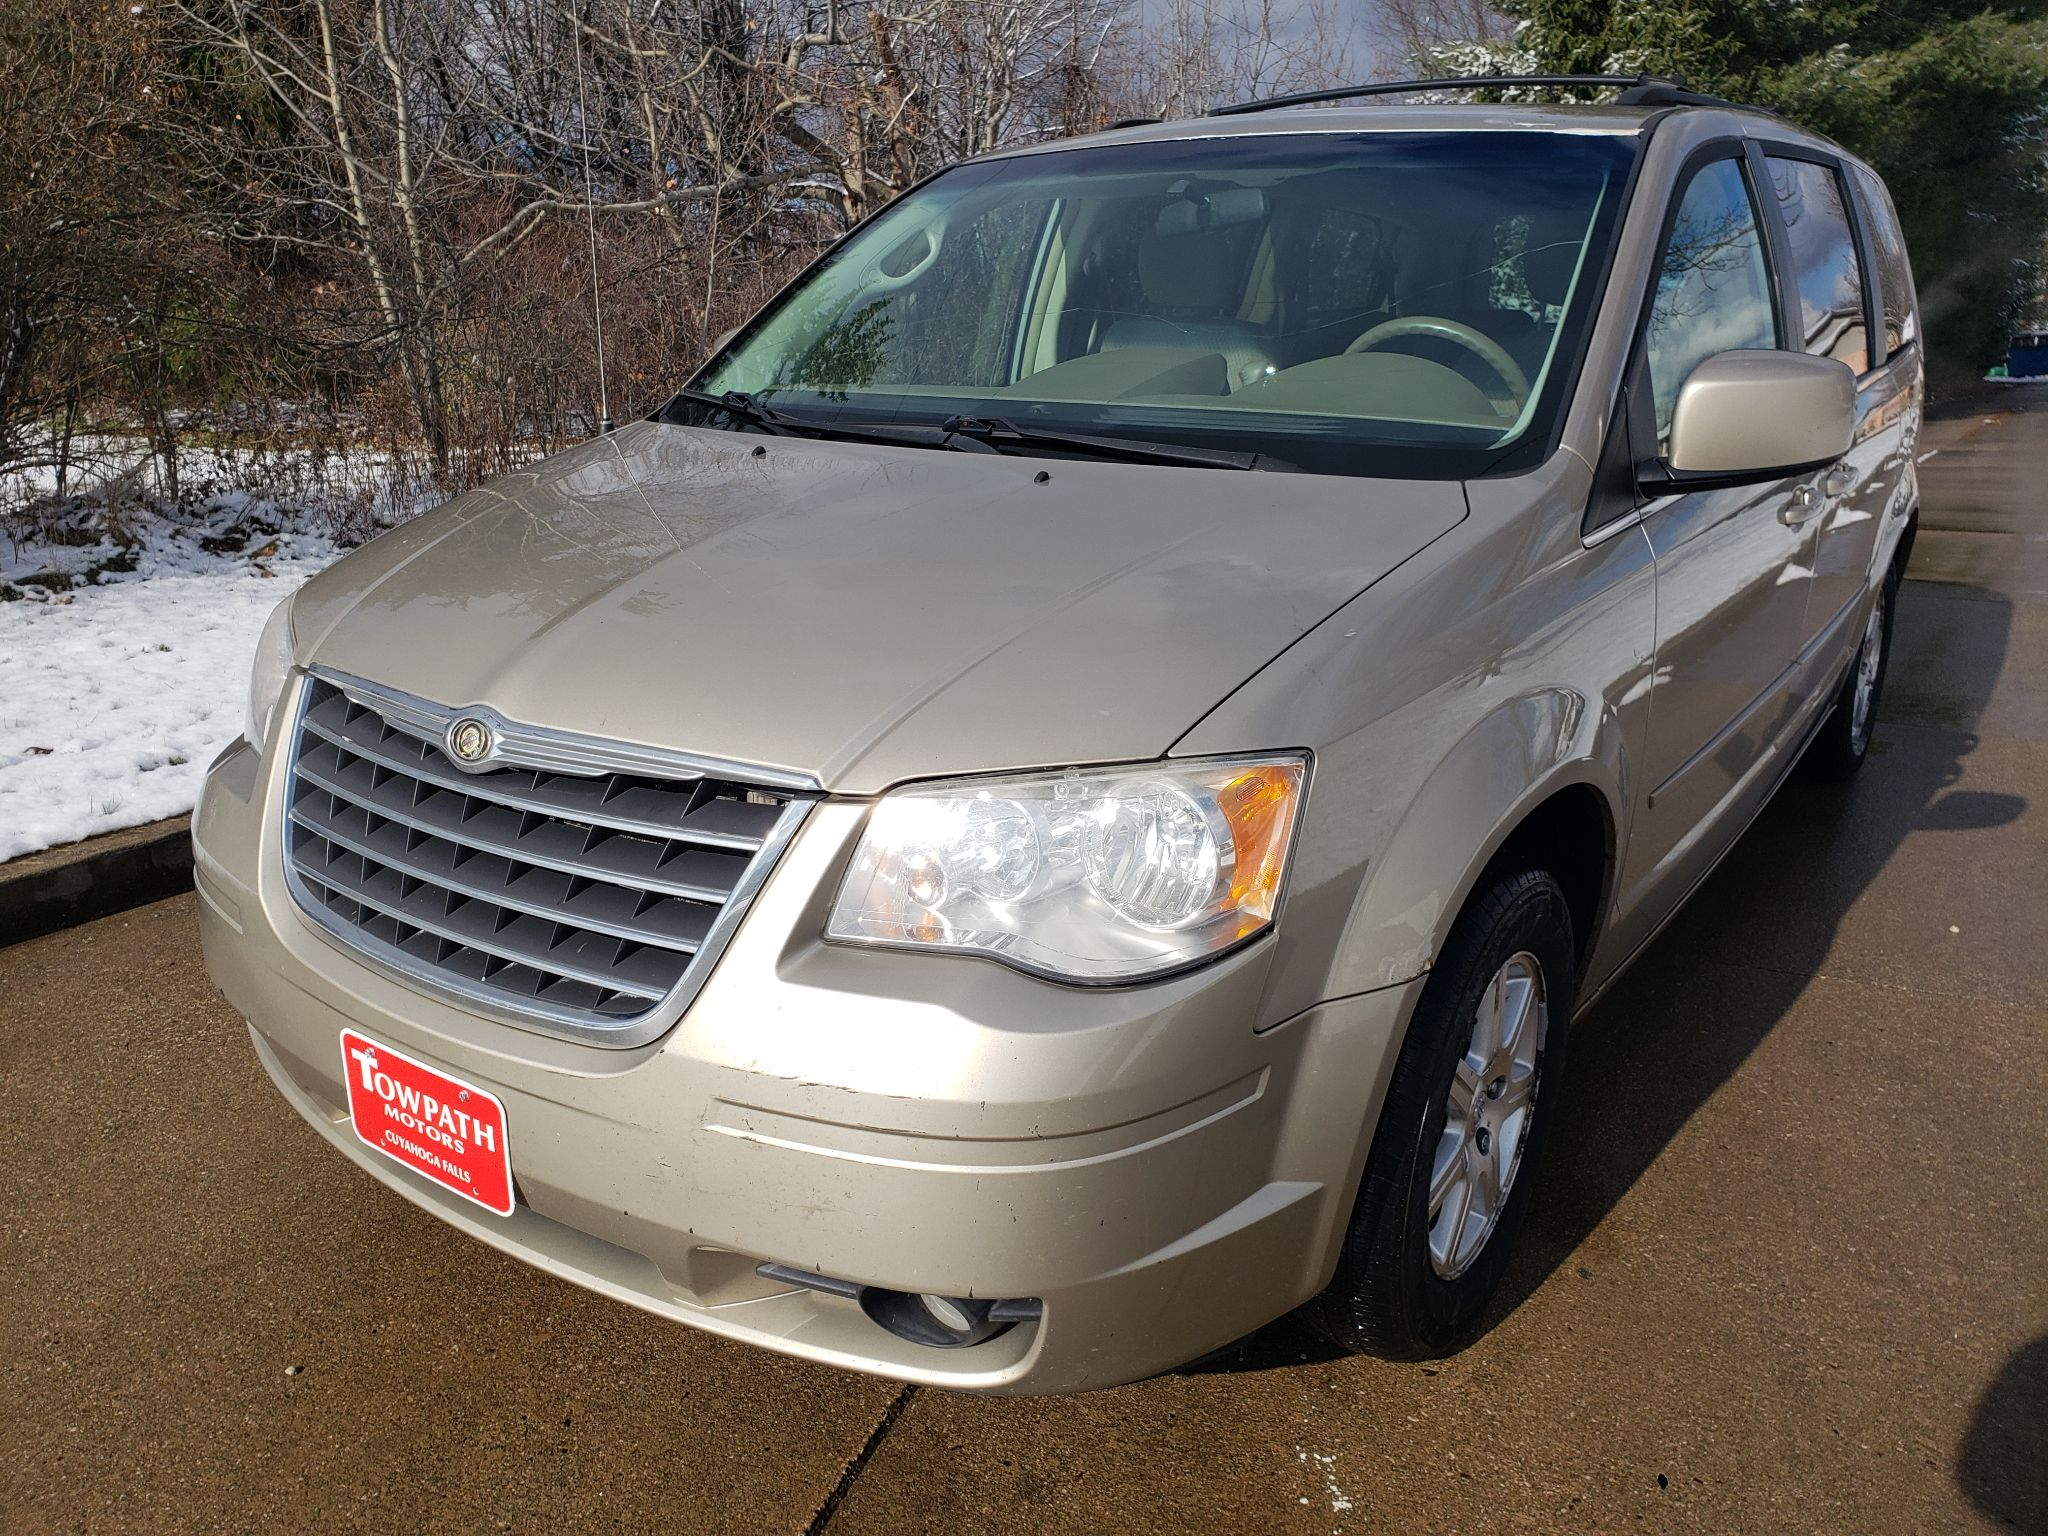 2008 Chrysler Town & Country for sale at Towpath Motors | Used Car Dealer in Peninsula Ohio